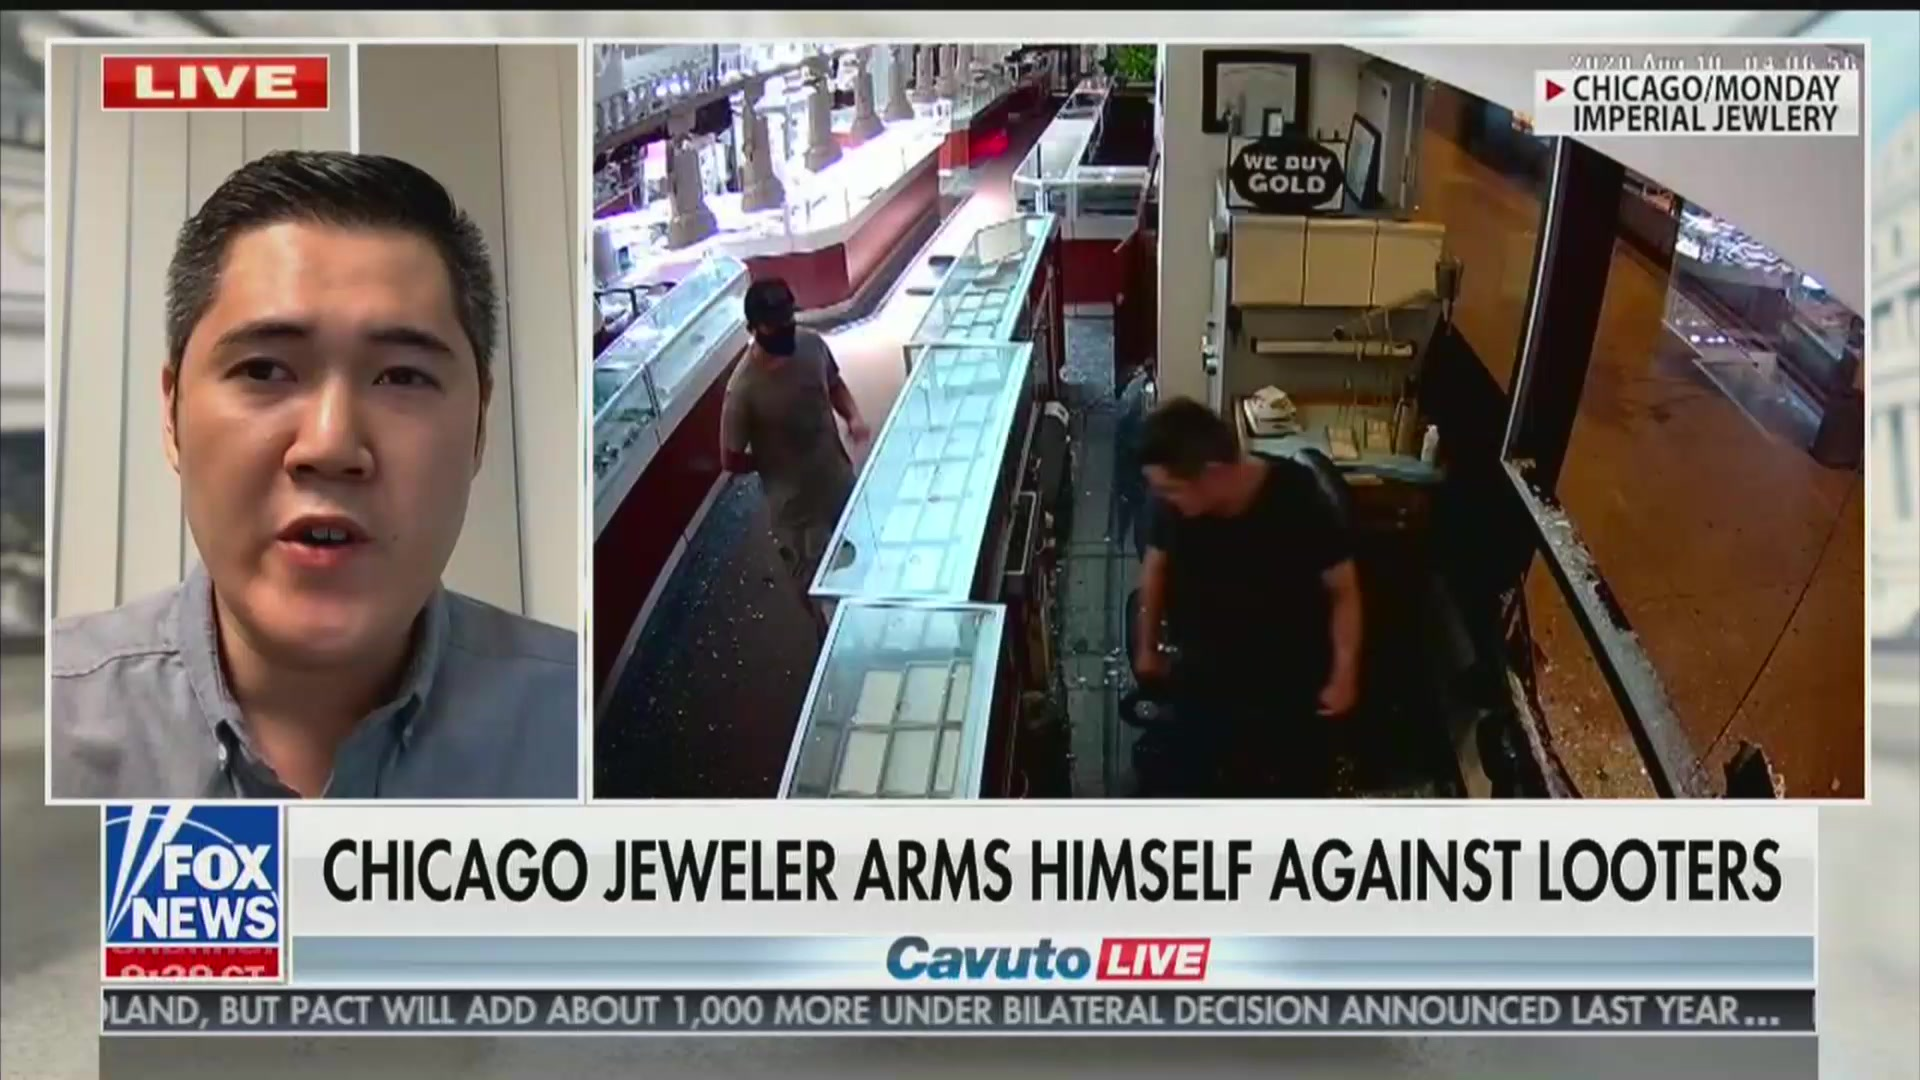 As the debate over how to protect U.S. cities plays out on the campaign trail, one Chicago business owner was forced to take matters into his own hands.